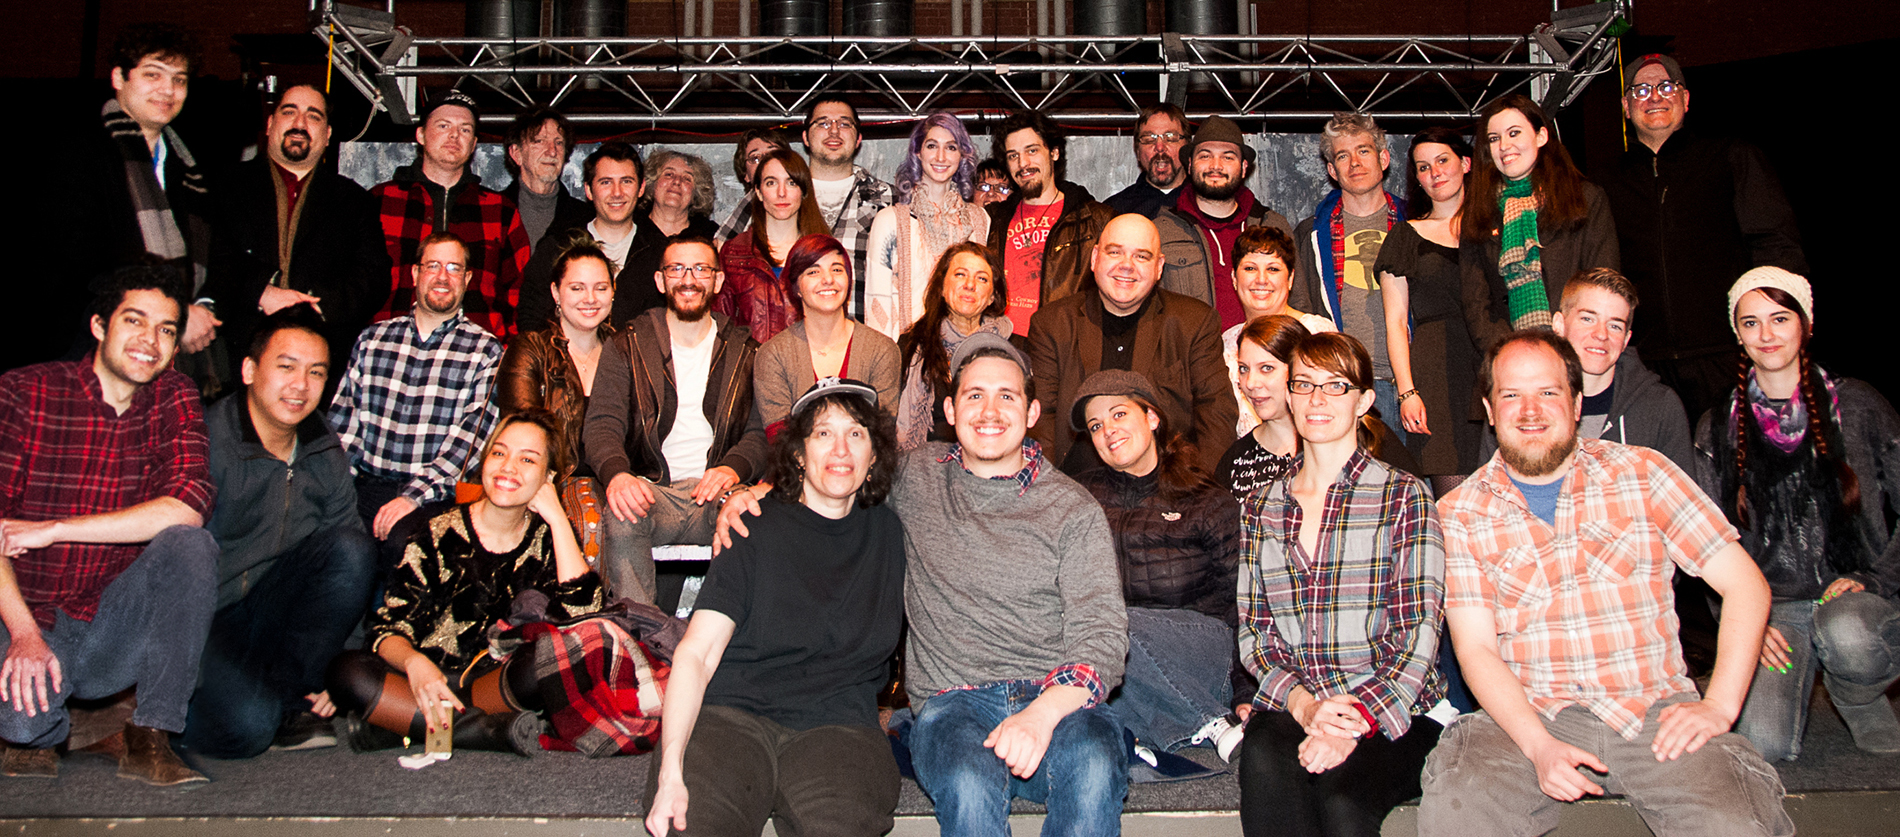 Group shot of Massachusetts-based filmmakers, actors and creatives gathering at social event hosted by Boston Indie Mafia, Inc., March 2015. Photo by Light Filters Studio.